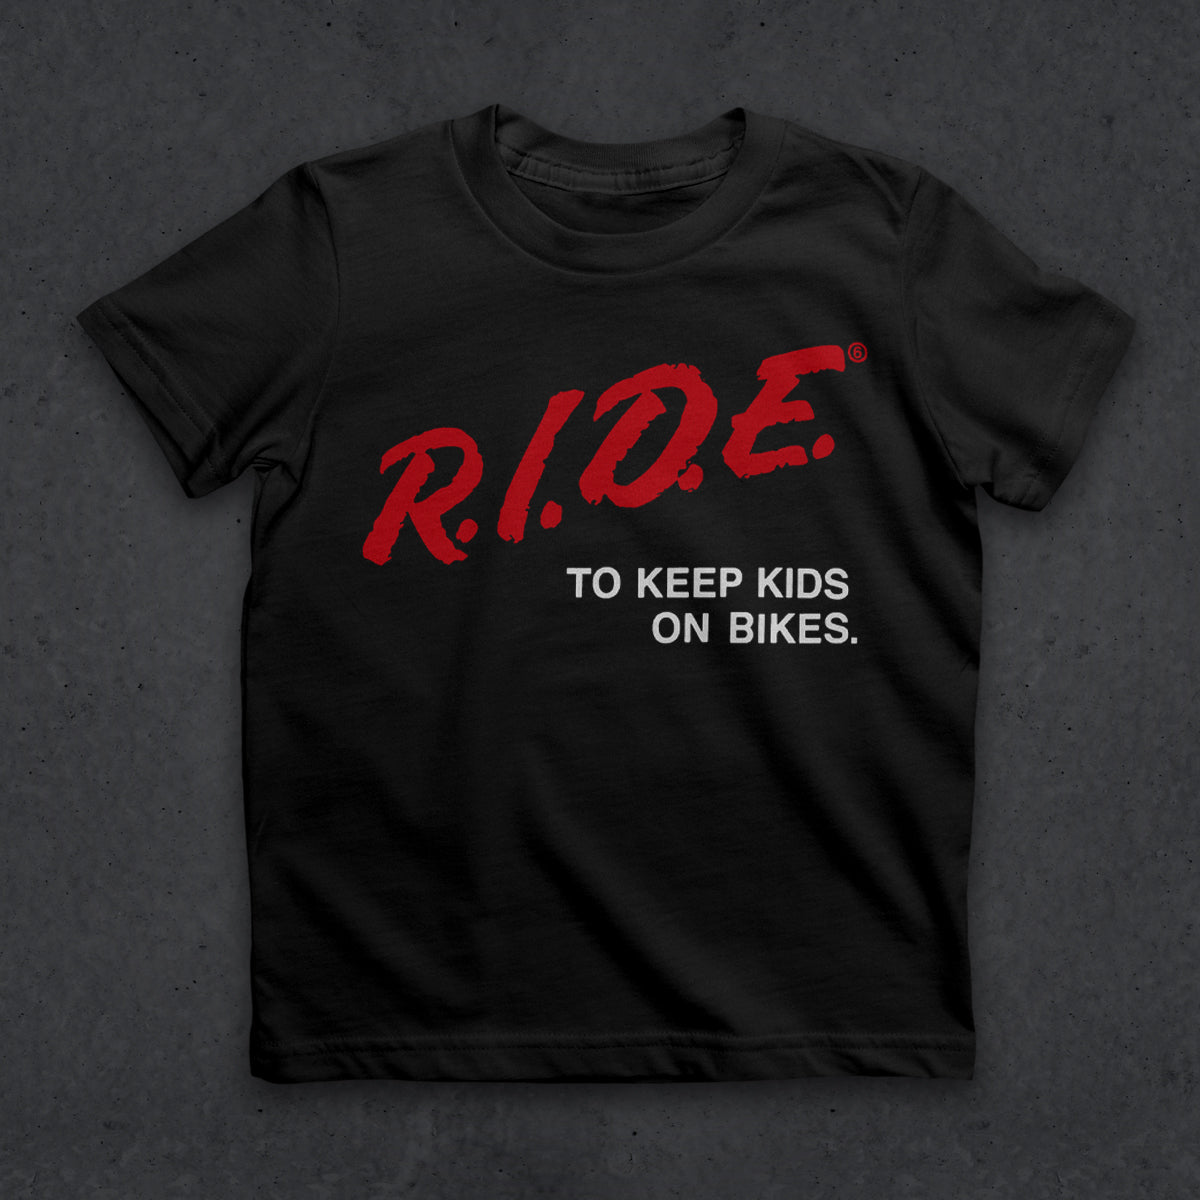 Kids on Bikes T (JR)